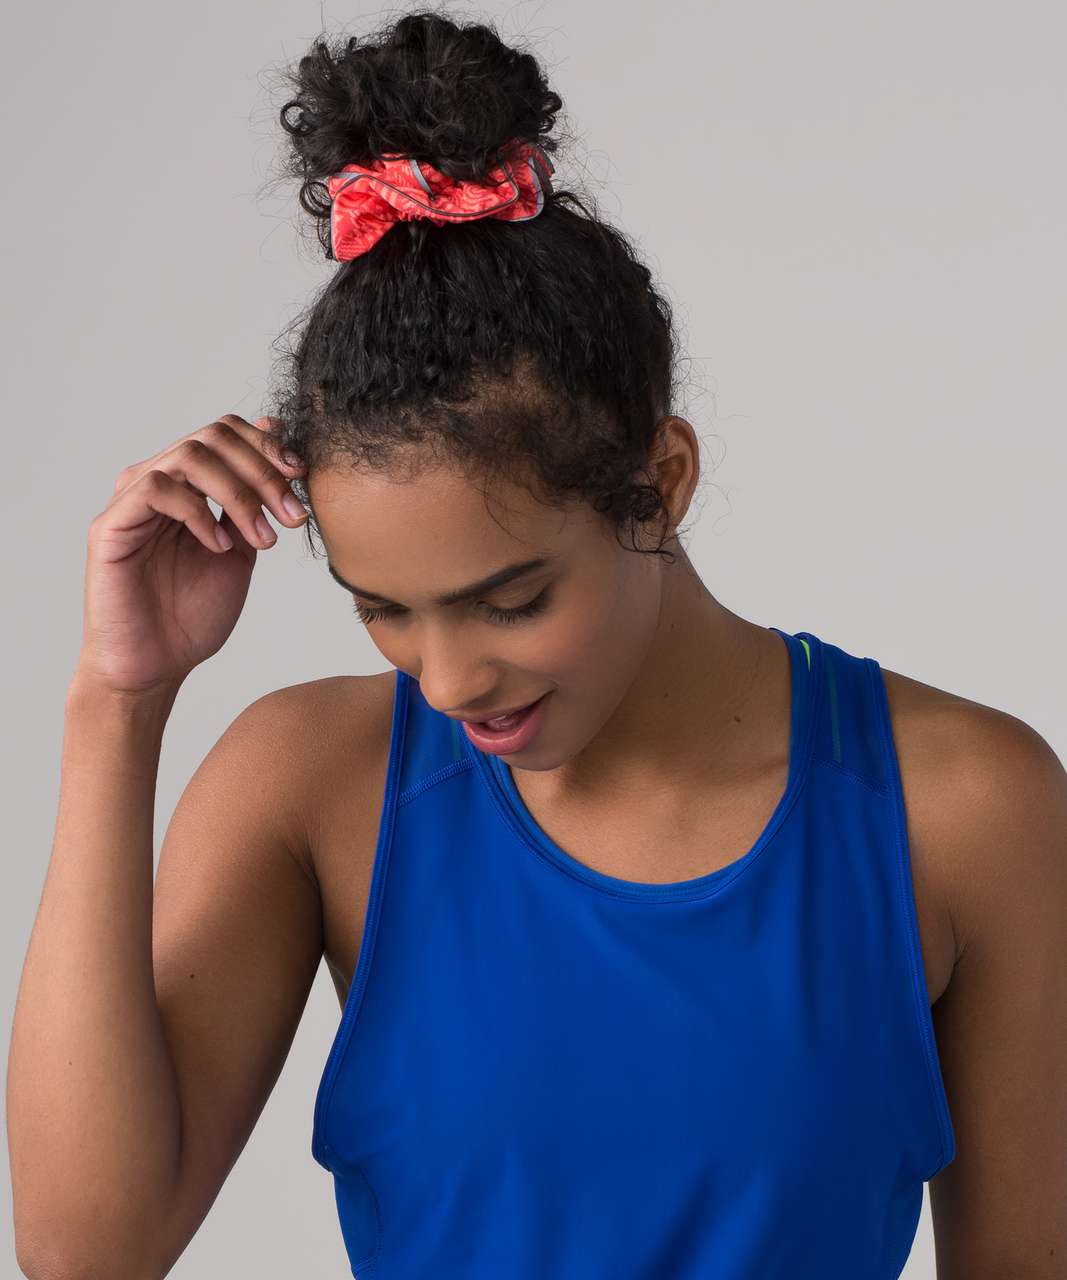 Lululemon Light Locks Scrunchie (SeaWheeze) - Chop Chop Grapefruit Dust Coral